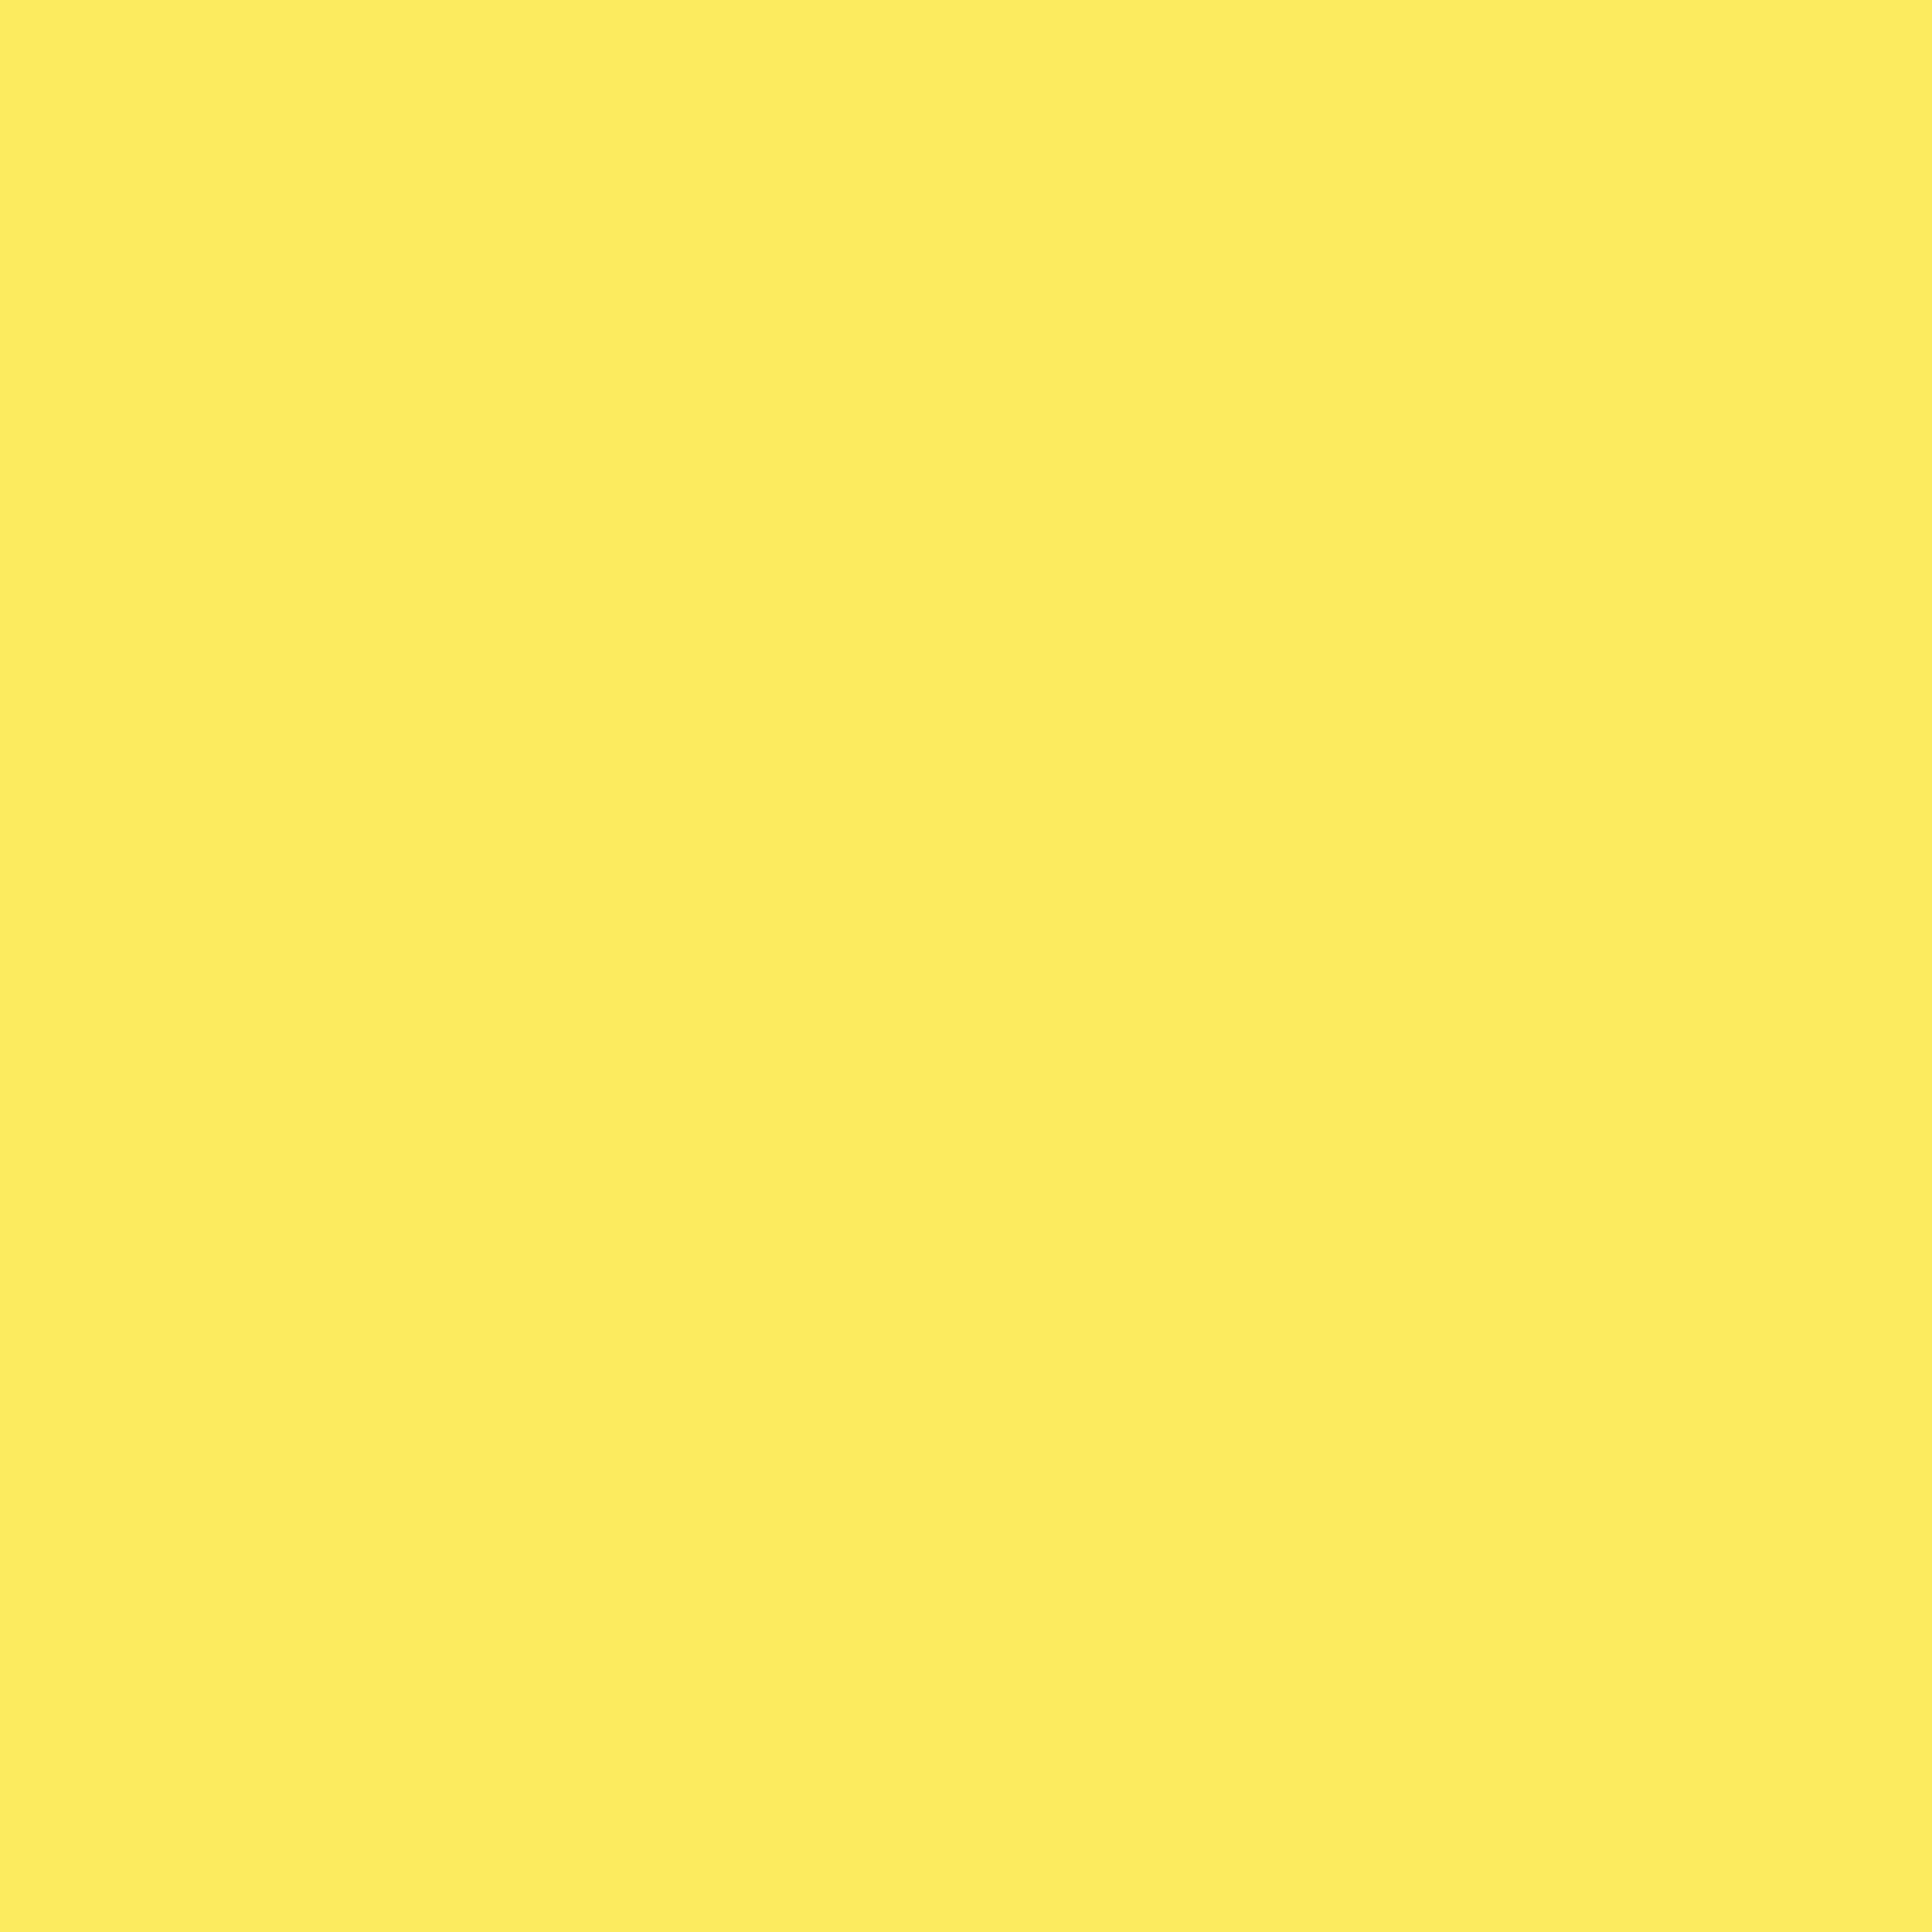 3600x3600 Maize Solid Color Background